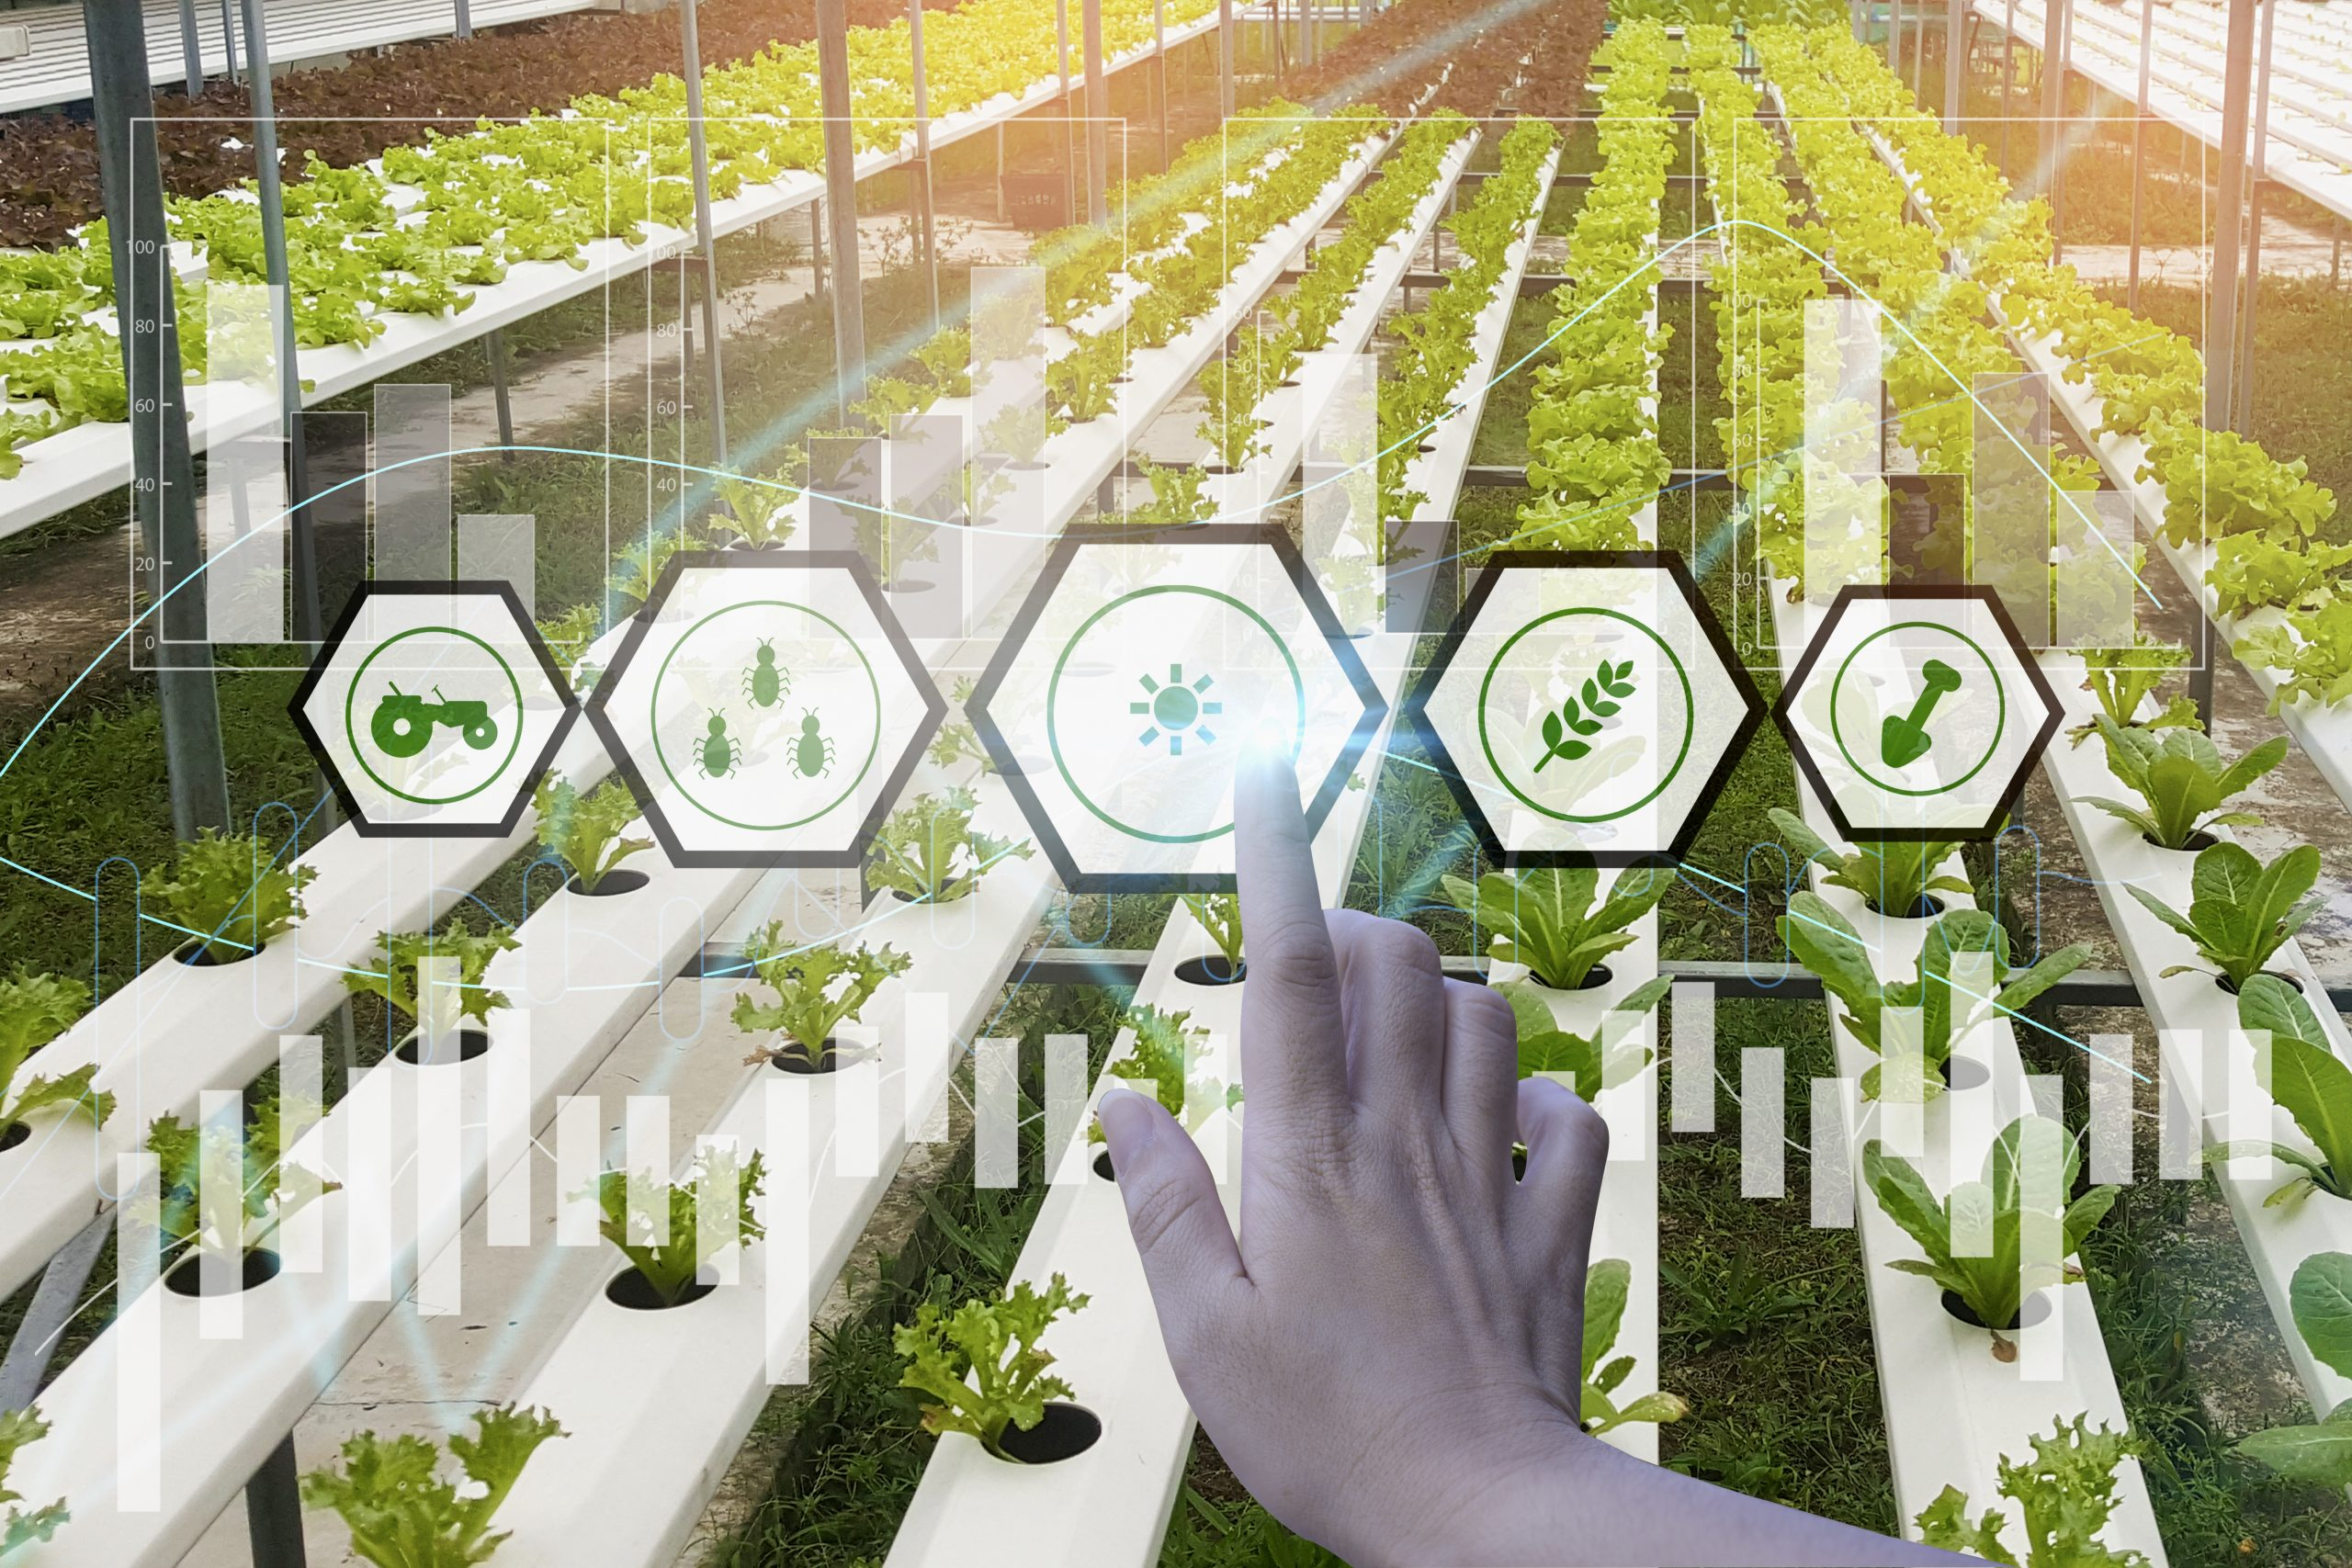 Human hand touches a symbol representing light in a vertical farm.